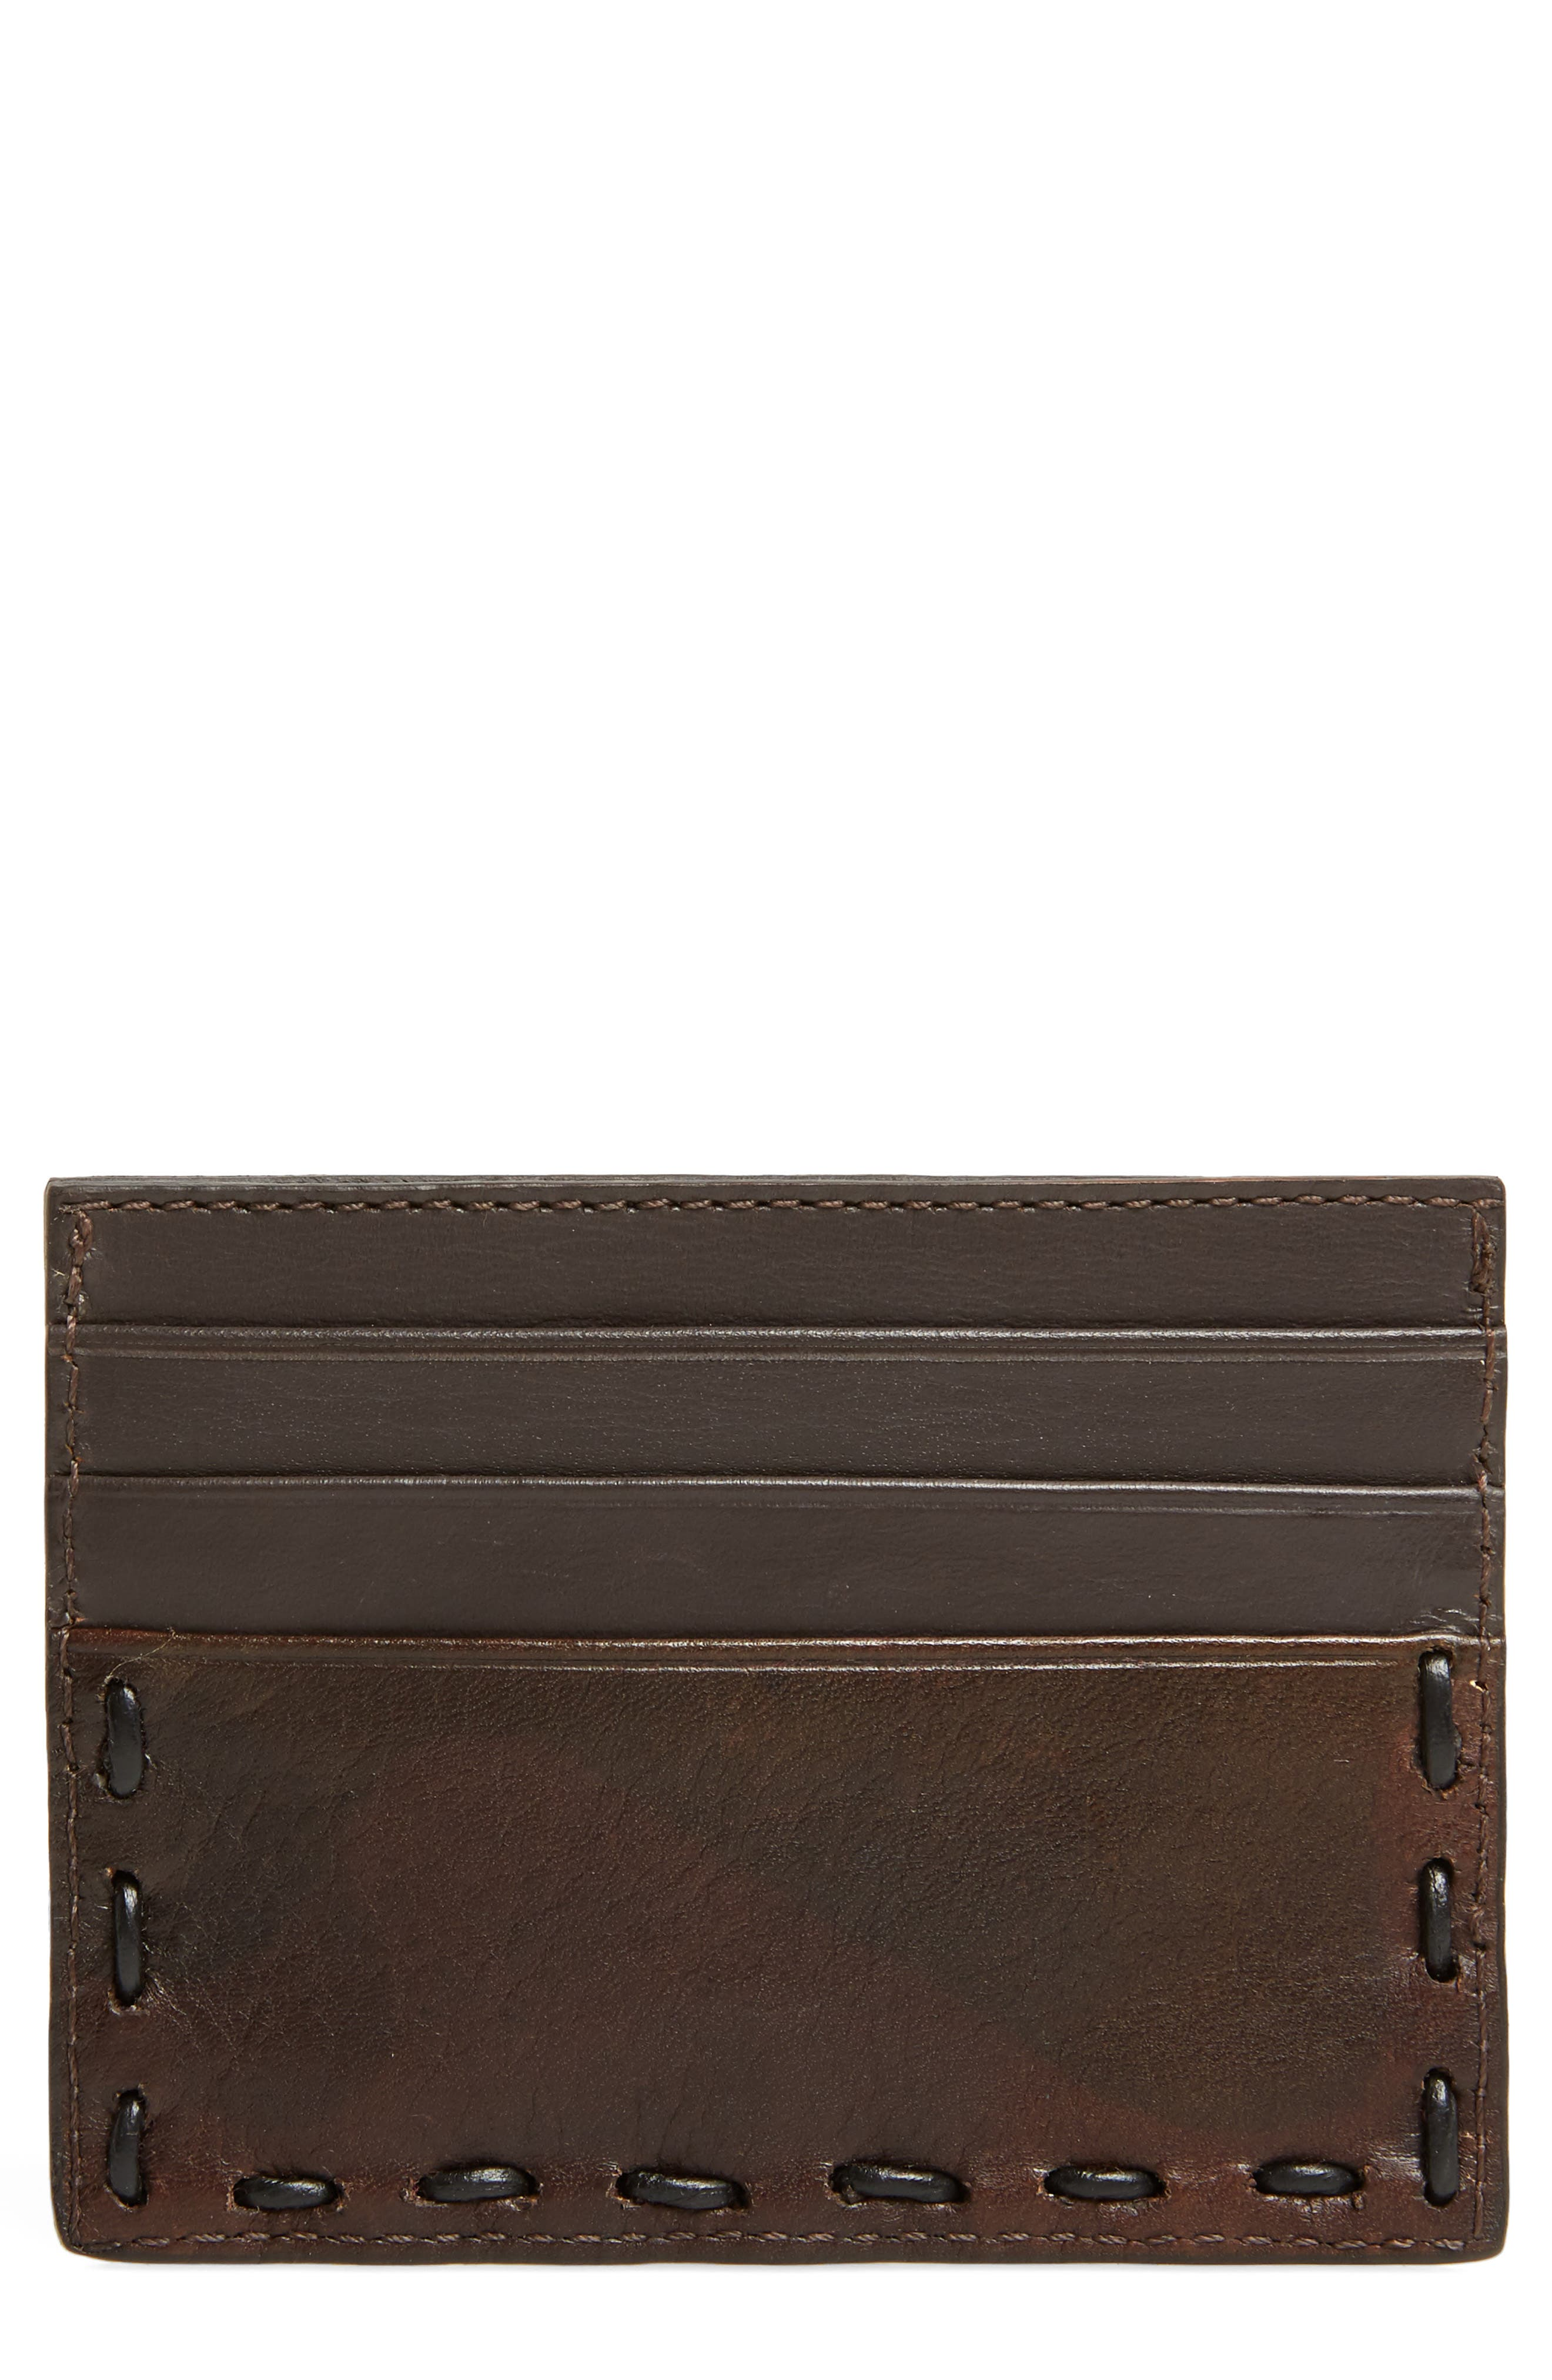 Pickstitched Leather Card Case,                             Main thumbnail 1, color,                             206